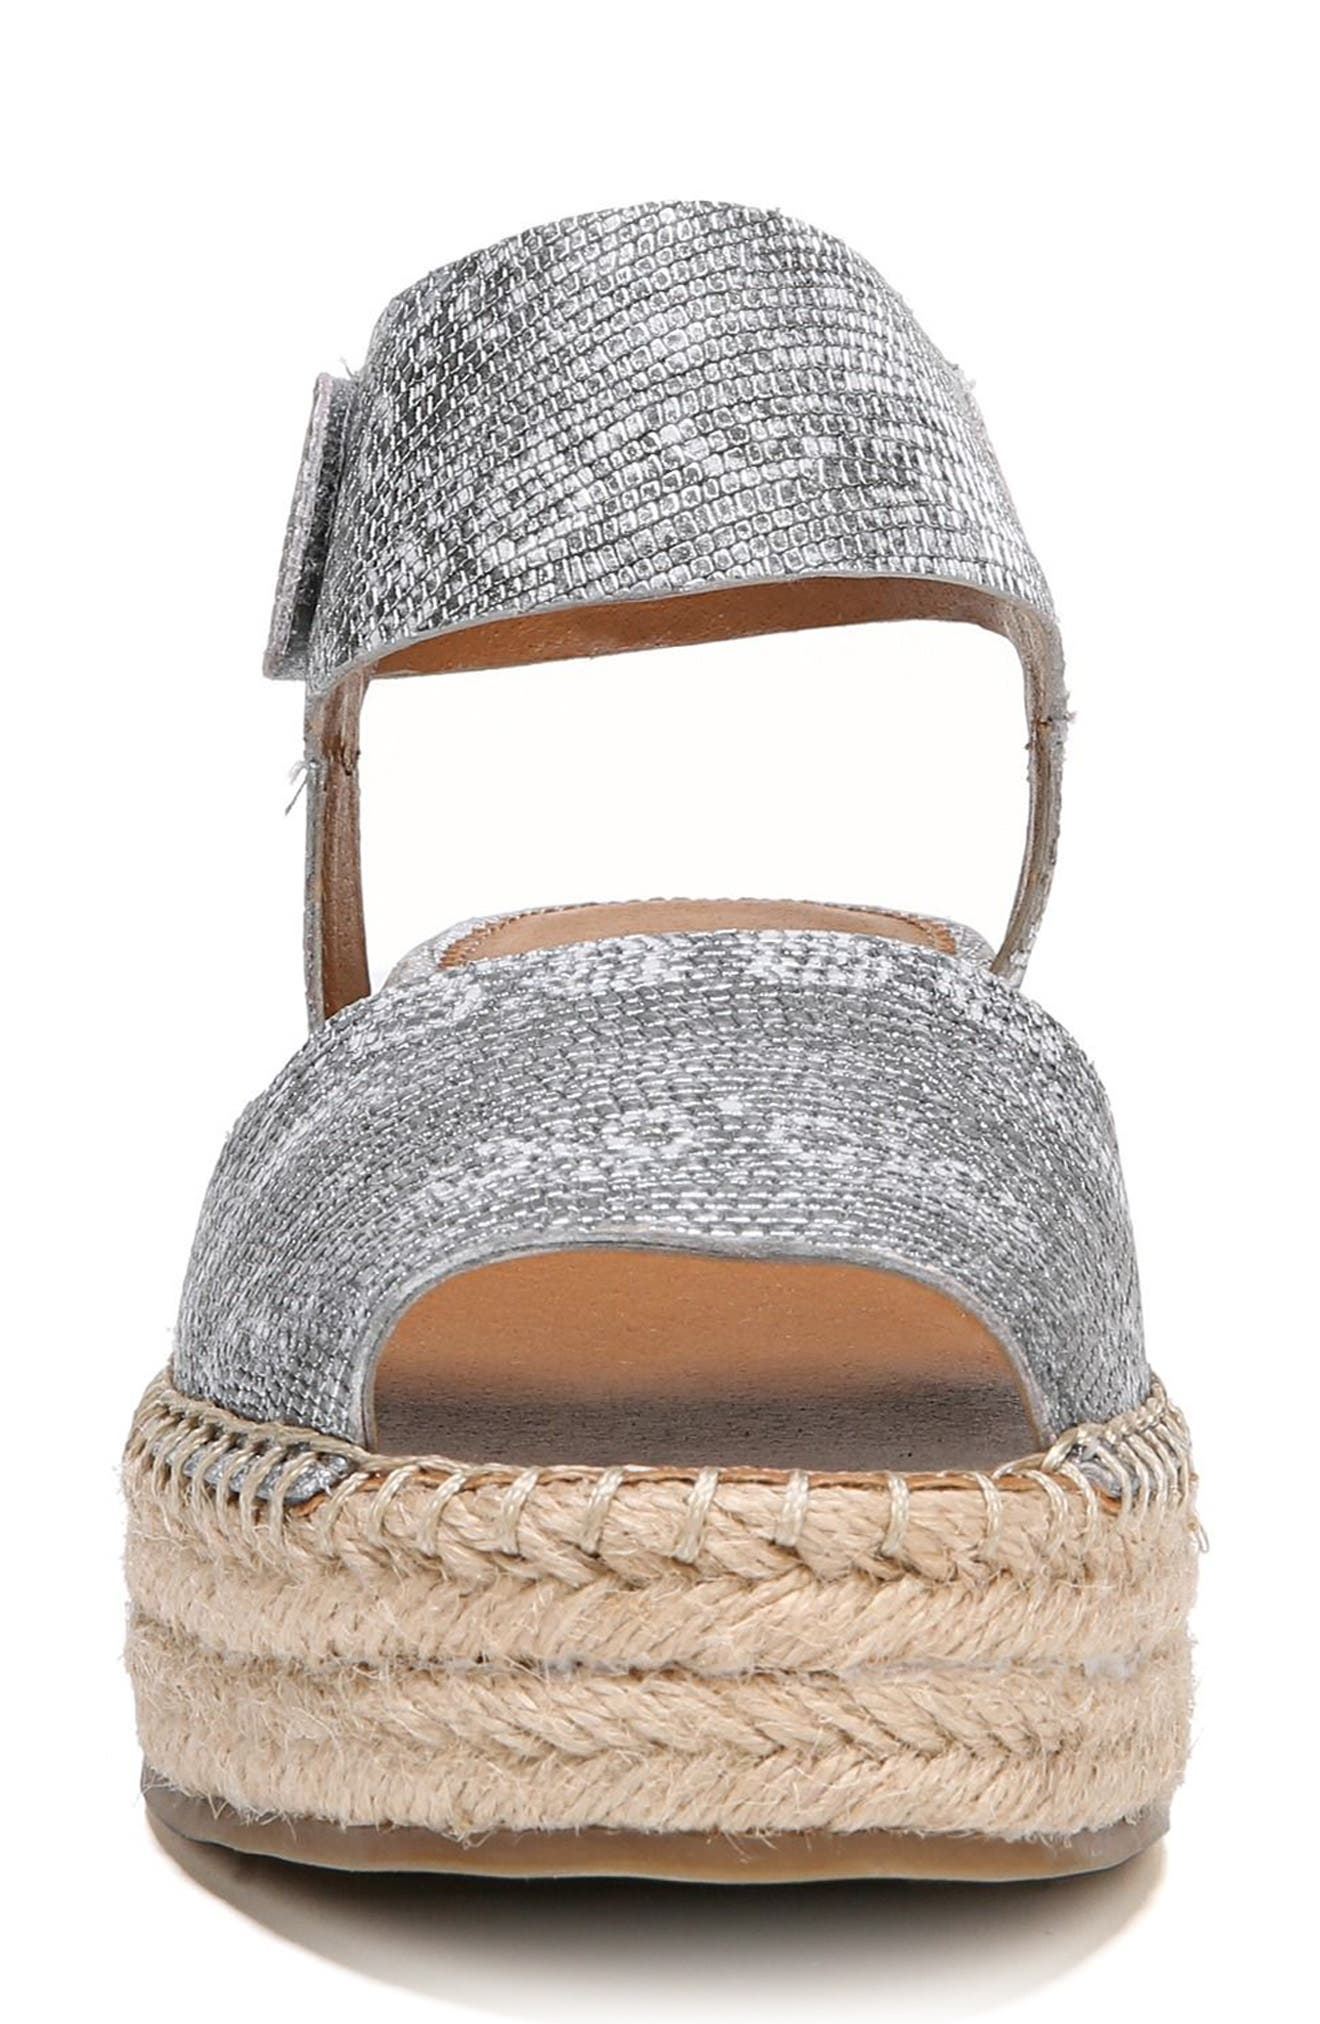 Oak Platform Wedge Espadrille,                             Alternate thumbnail 4, color,                             SILVER PRINTED LEATHER